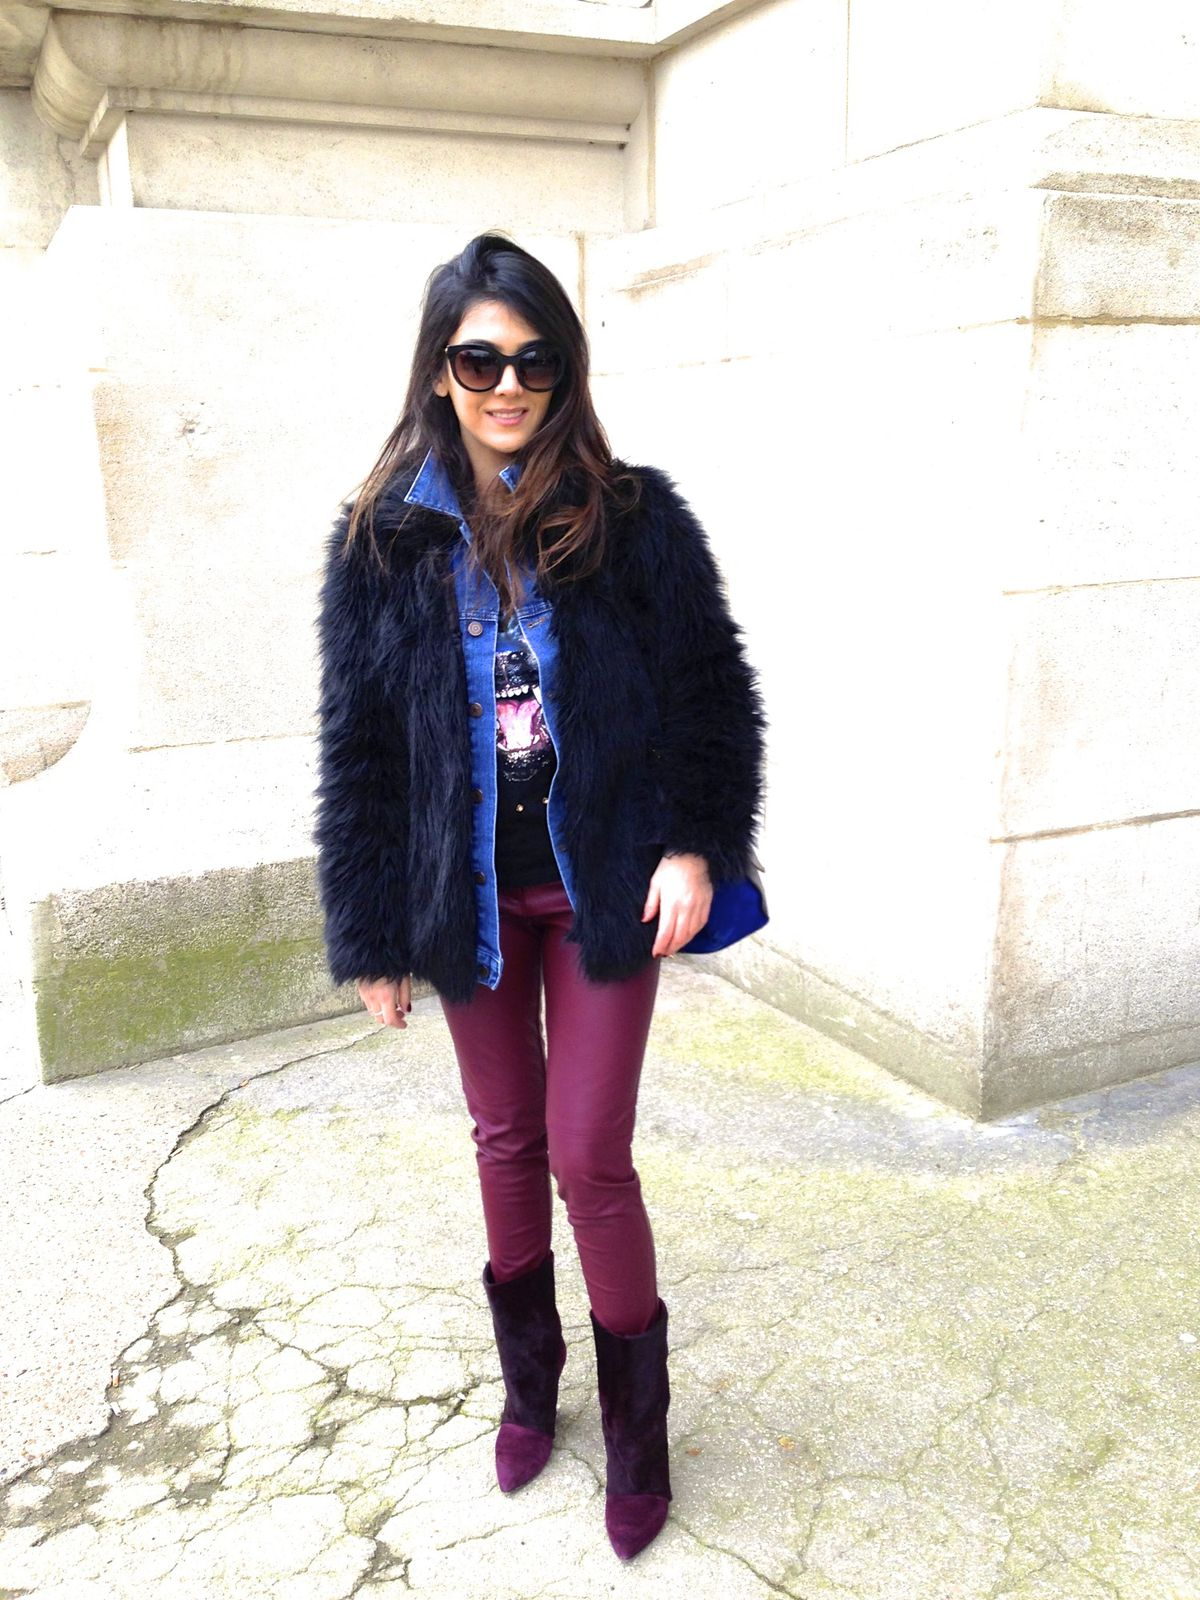 Im wearing : Asos Faux fur and Denim Jacket , H&M pant, Isabel Marant boots and Celine bag, Thierry Lasry sunglasses ( Lively model)